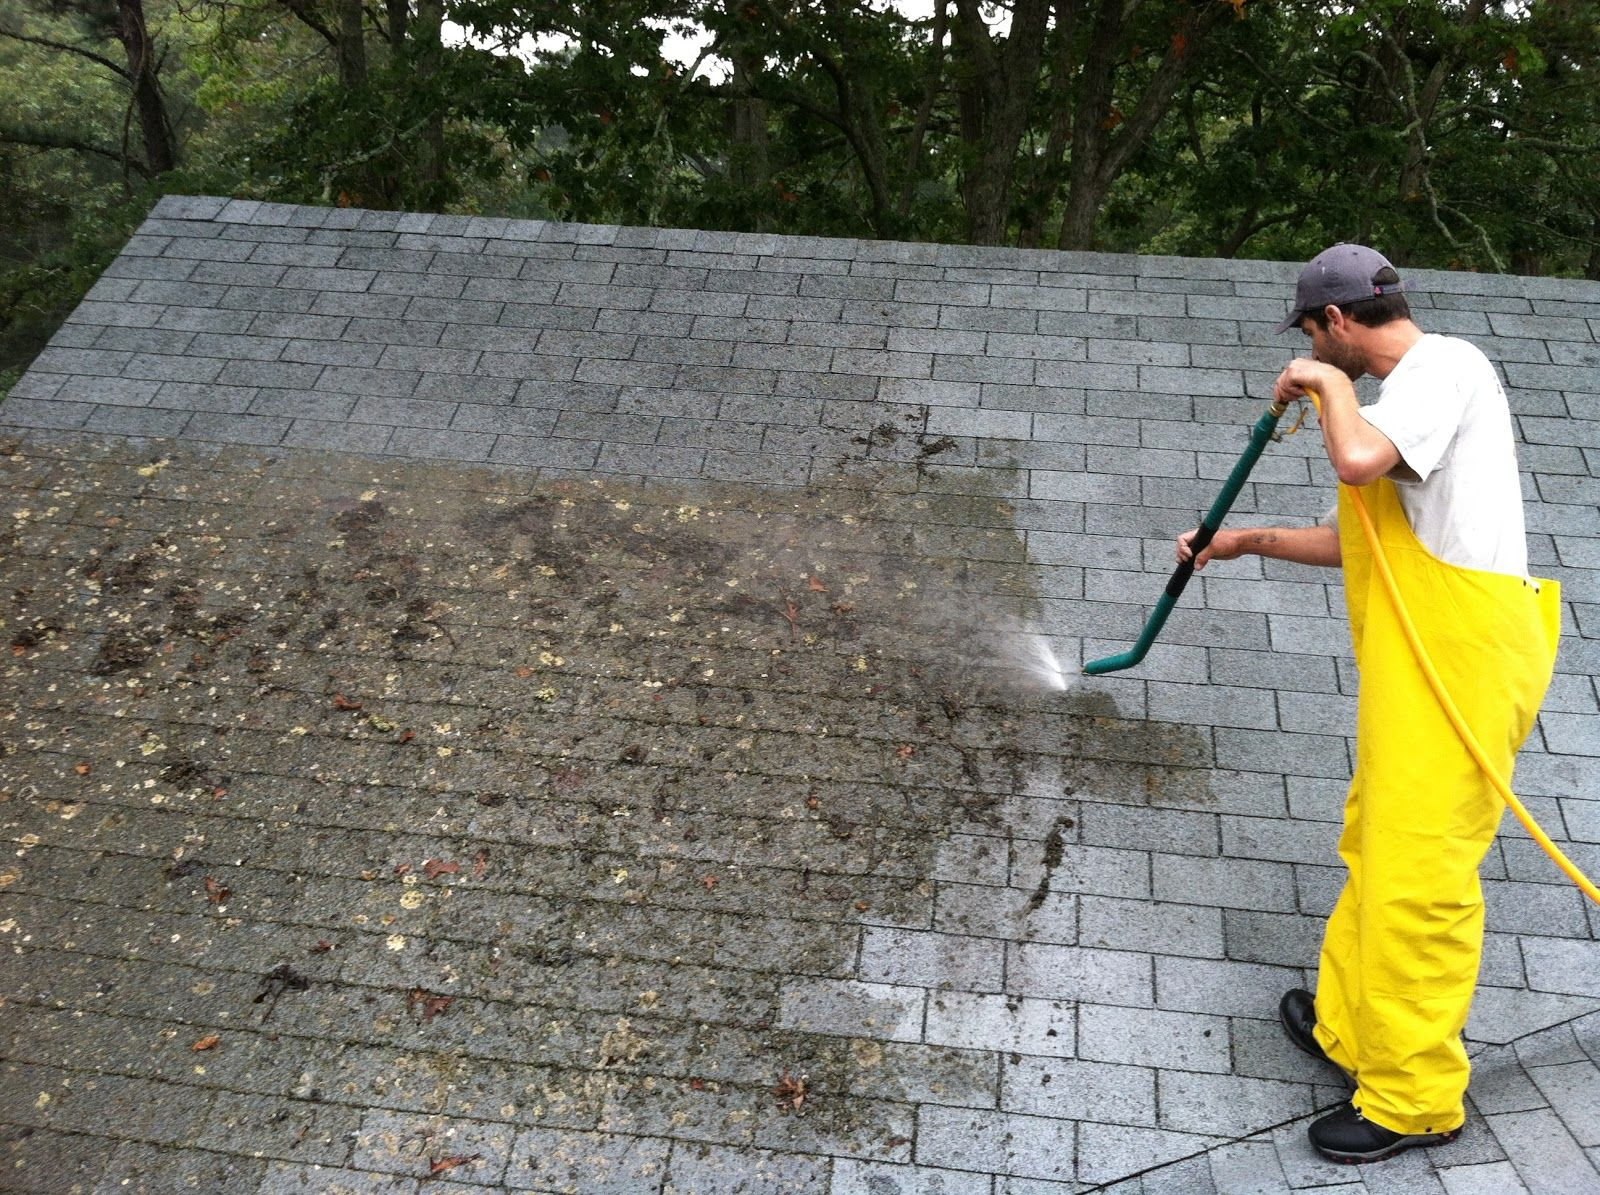 Roofmasters Is The Best Pressure Cleaning Company In Jupiter Contact Us Immediately To Extend The Life Of Roof Cleaning Roof Restoration Concrete Roof Tiles